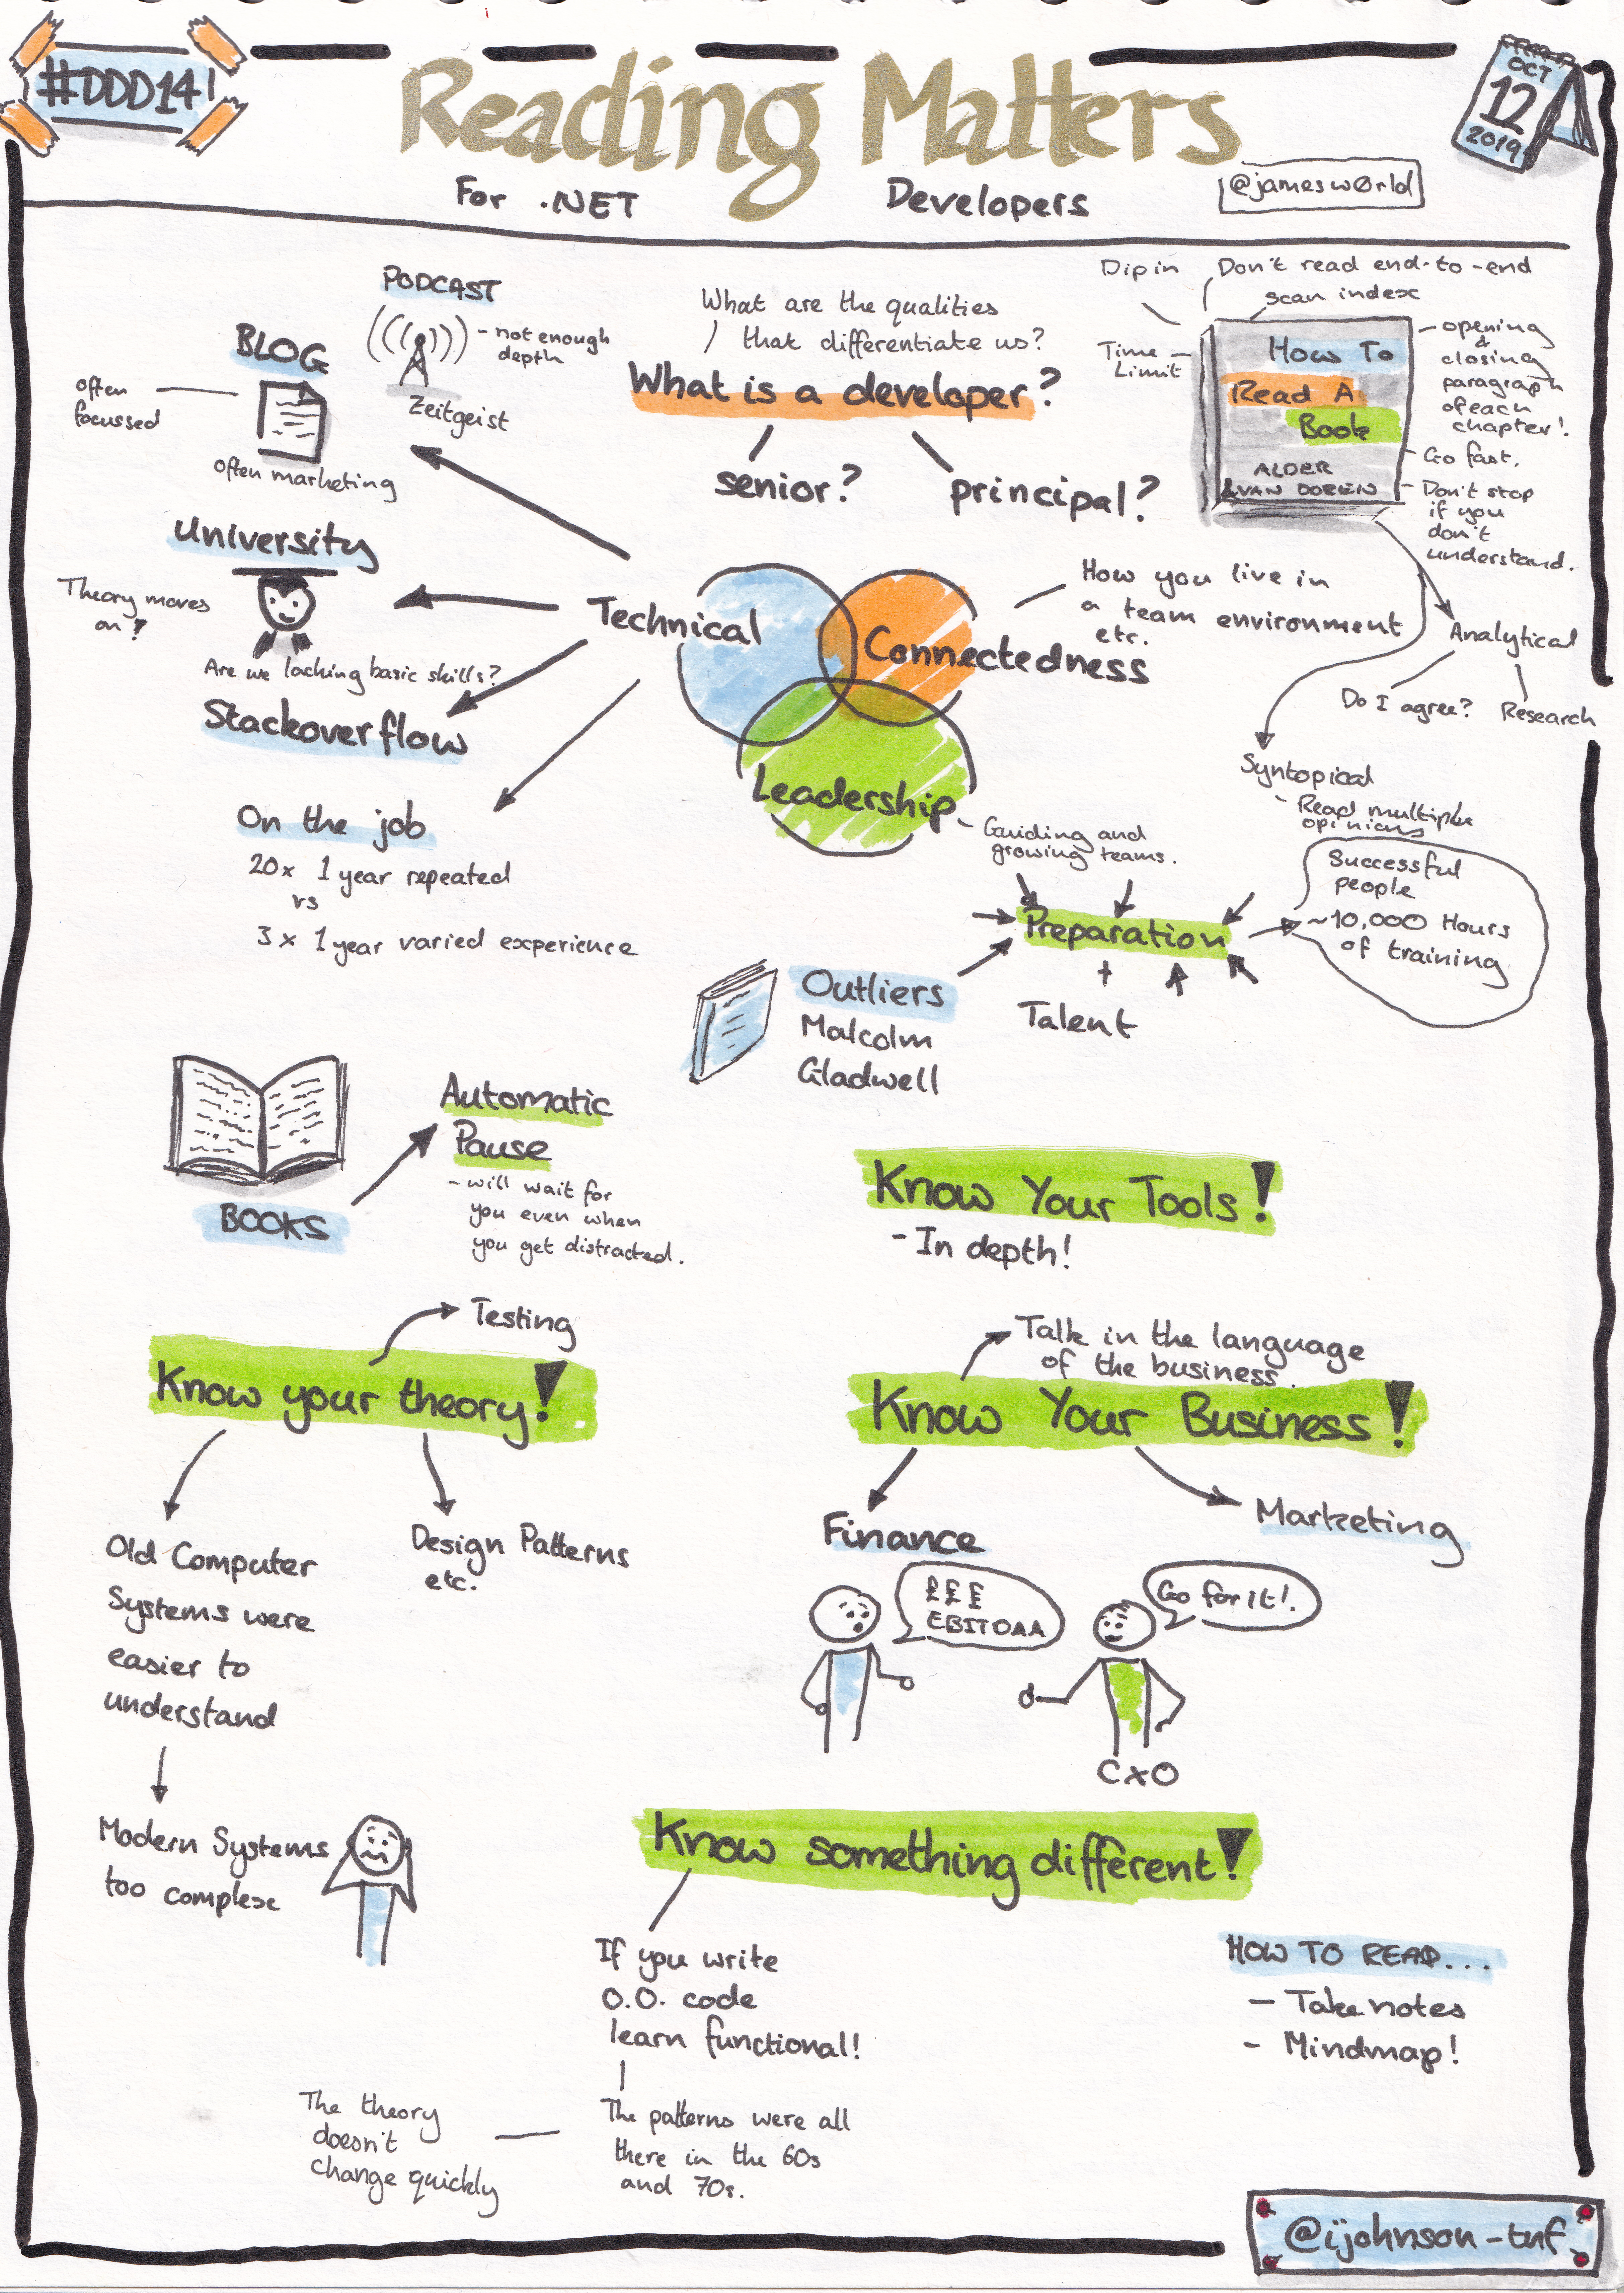 Sketchnotes from the talk 'Reading matters for .NET Developers' by James World